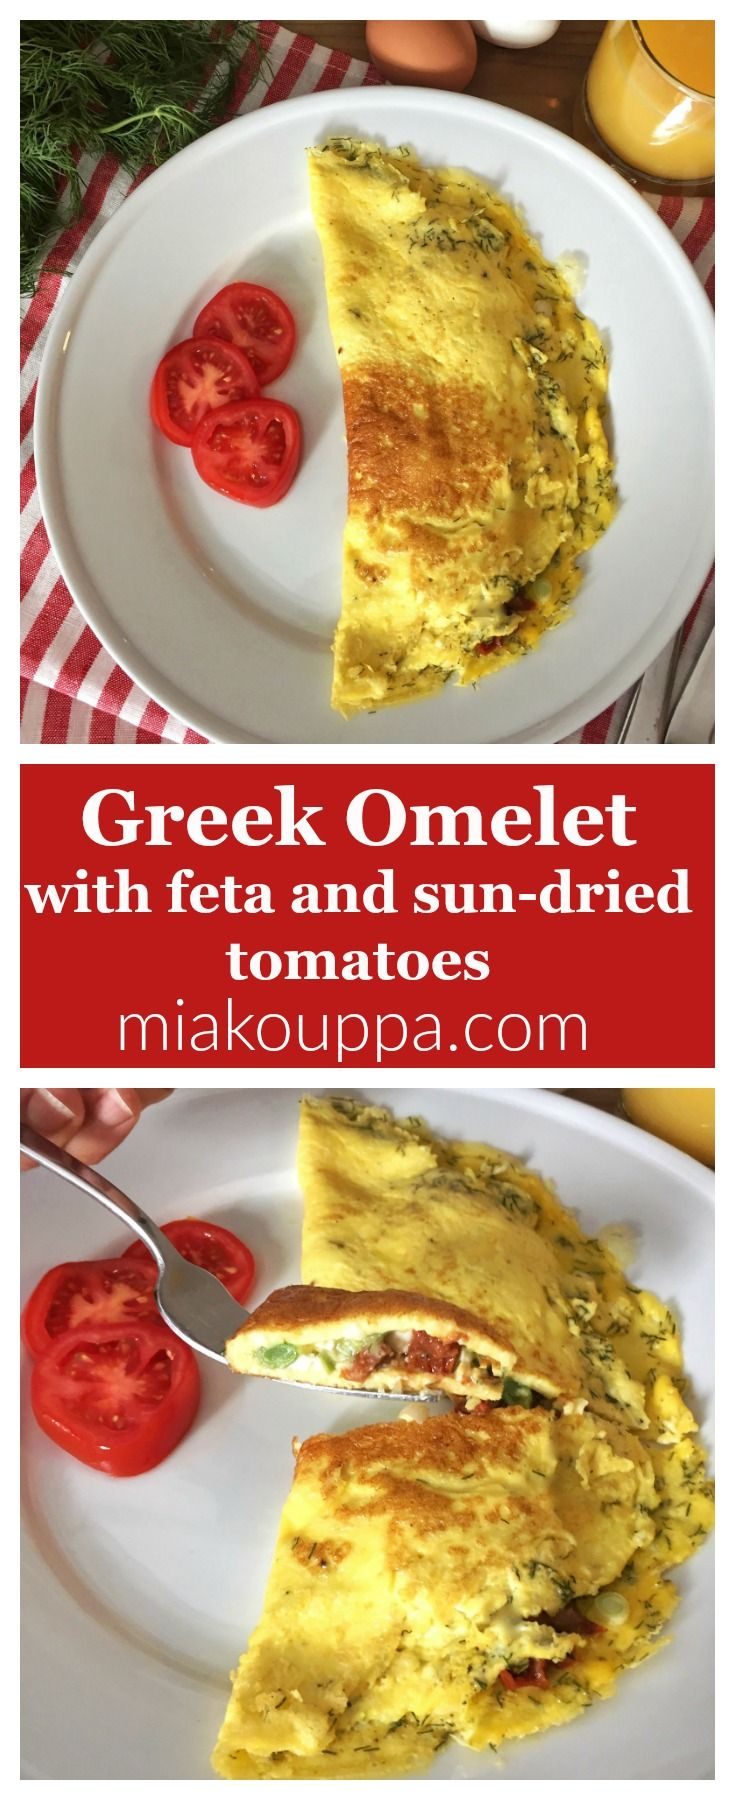 Omelette with feta and sun-dried tomatoes